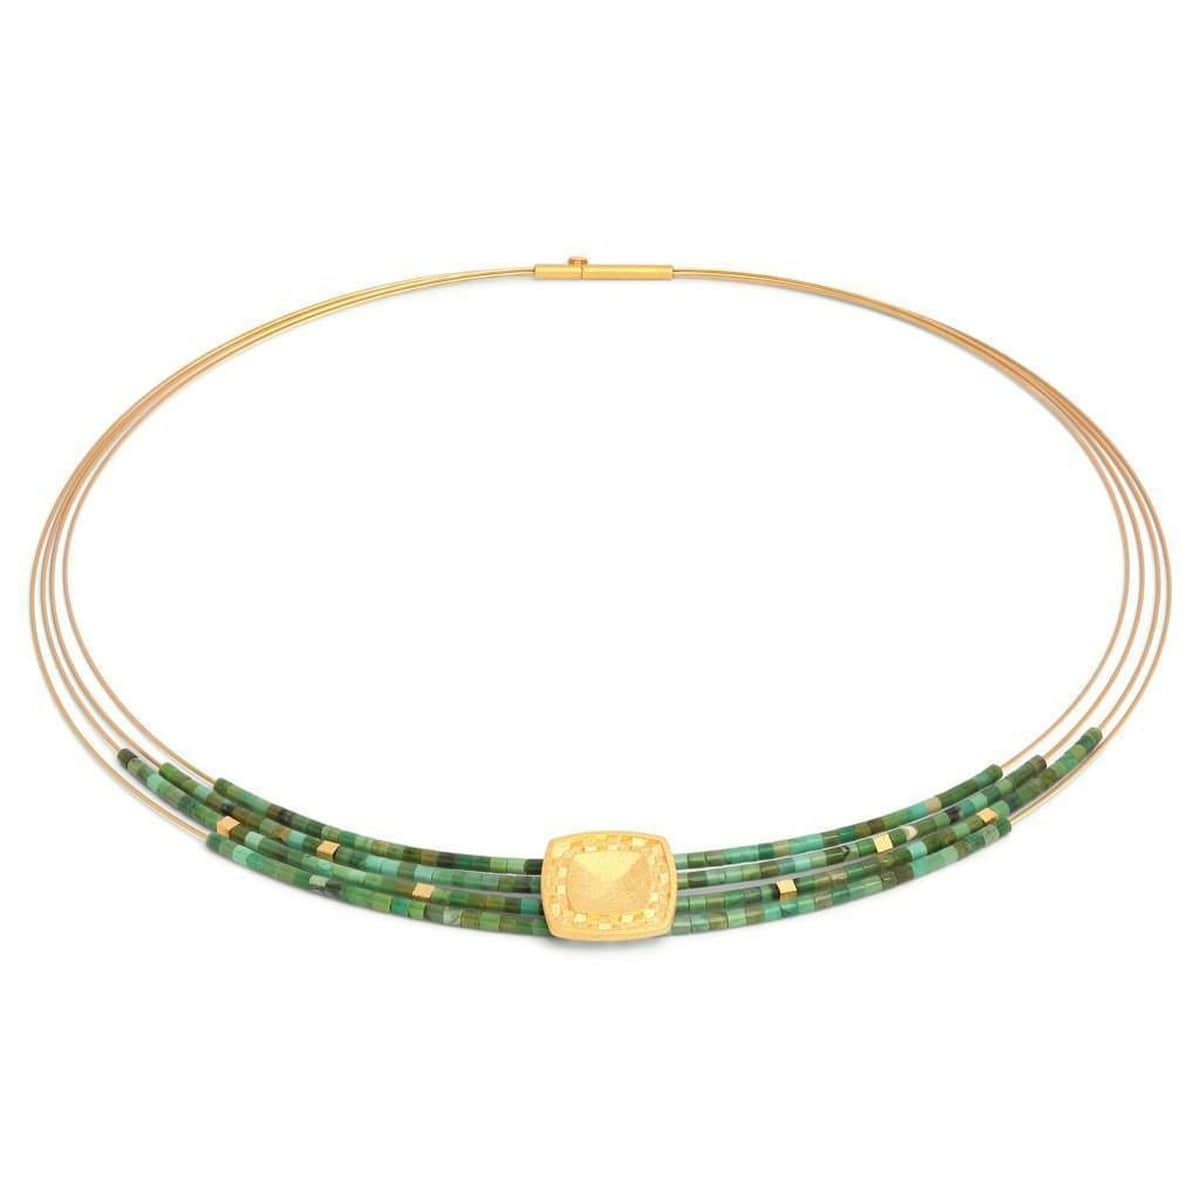 Movinna Green Turquoise Necklace - 84926356